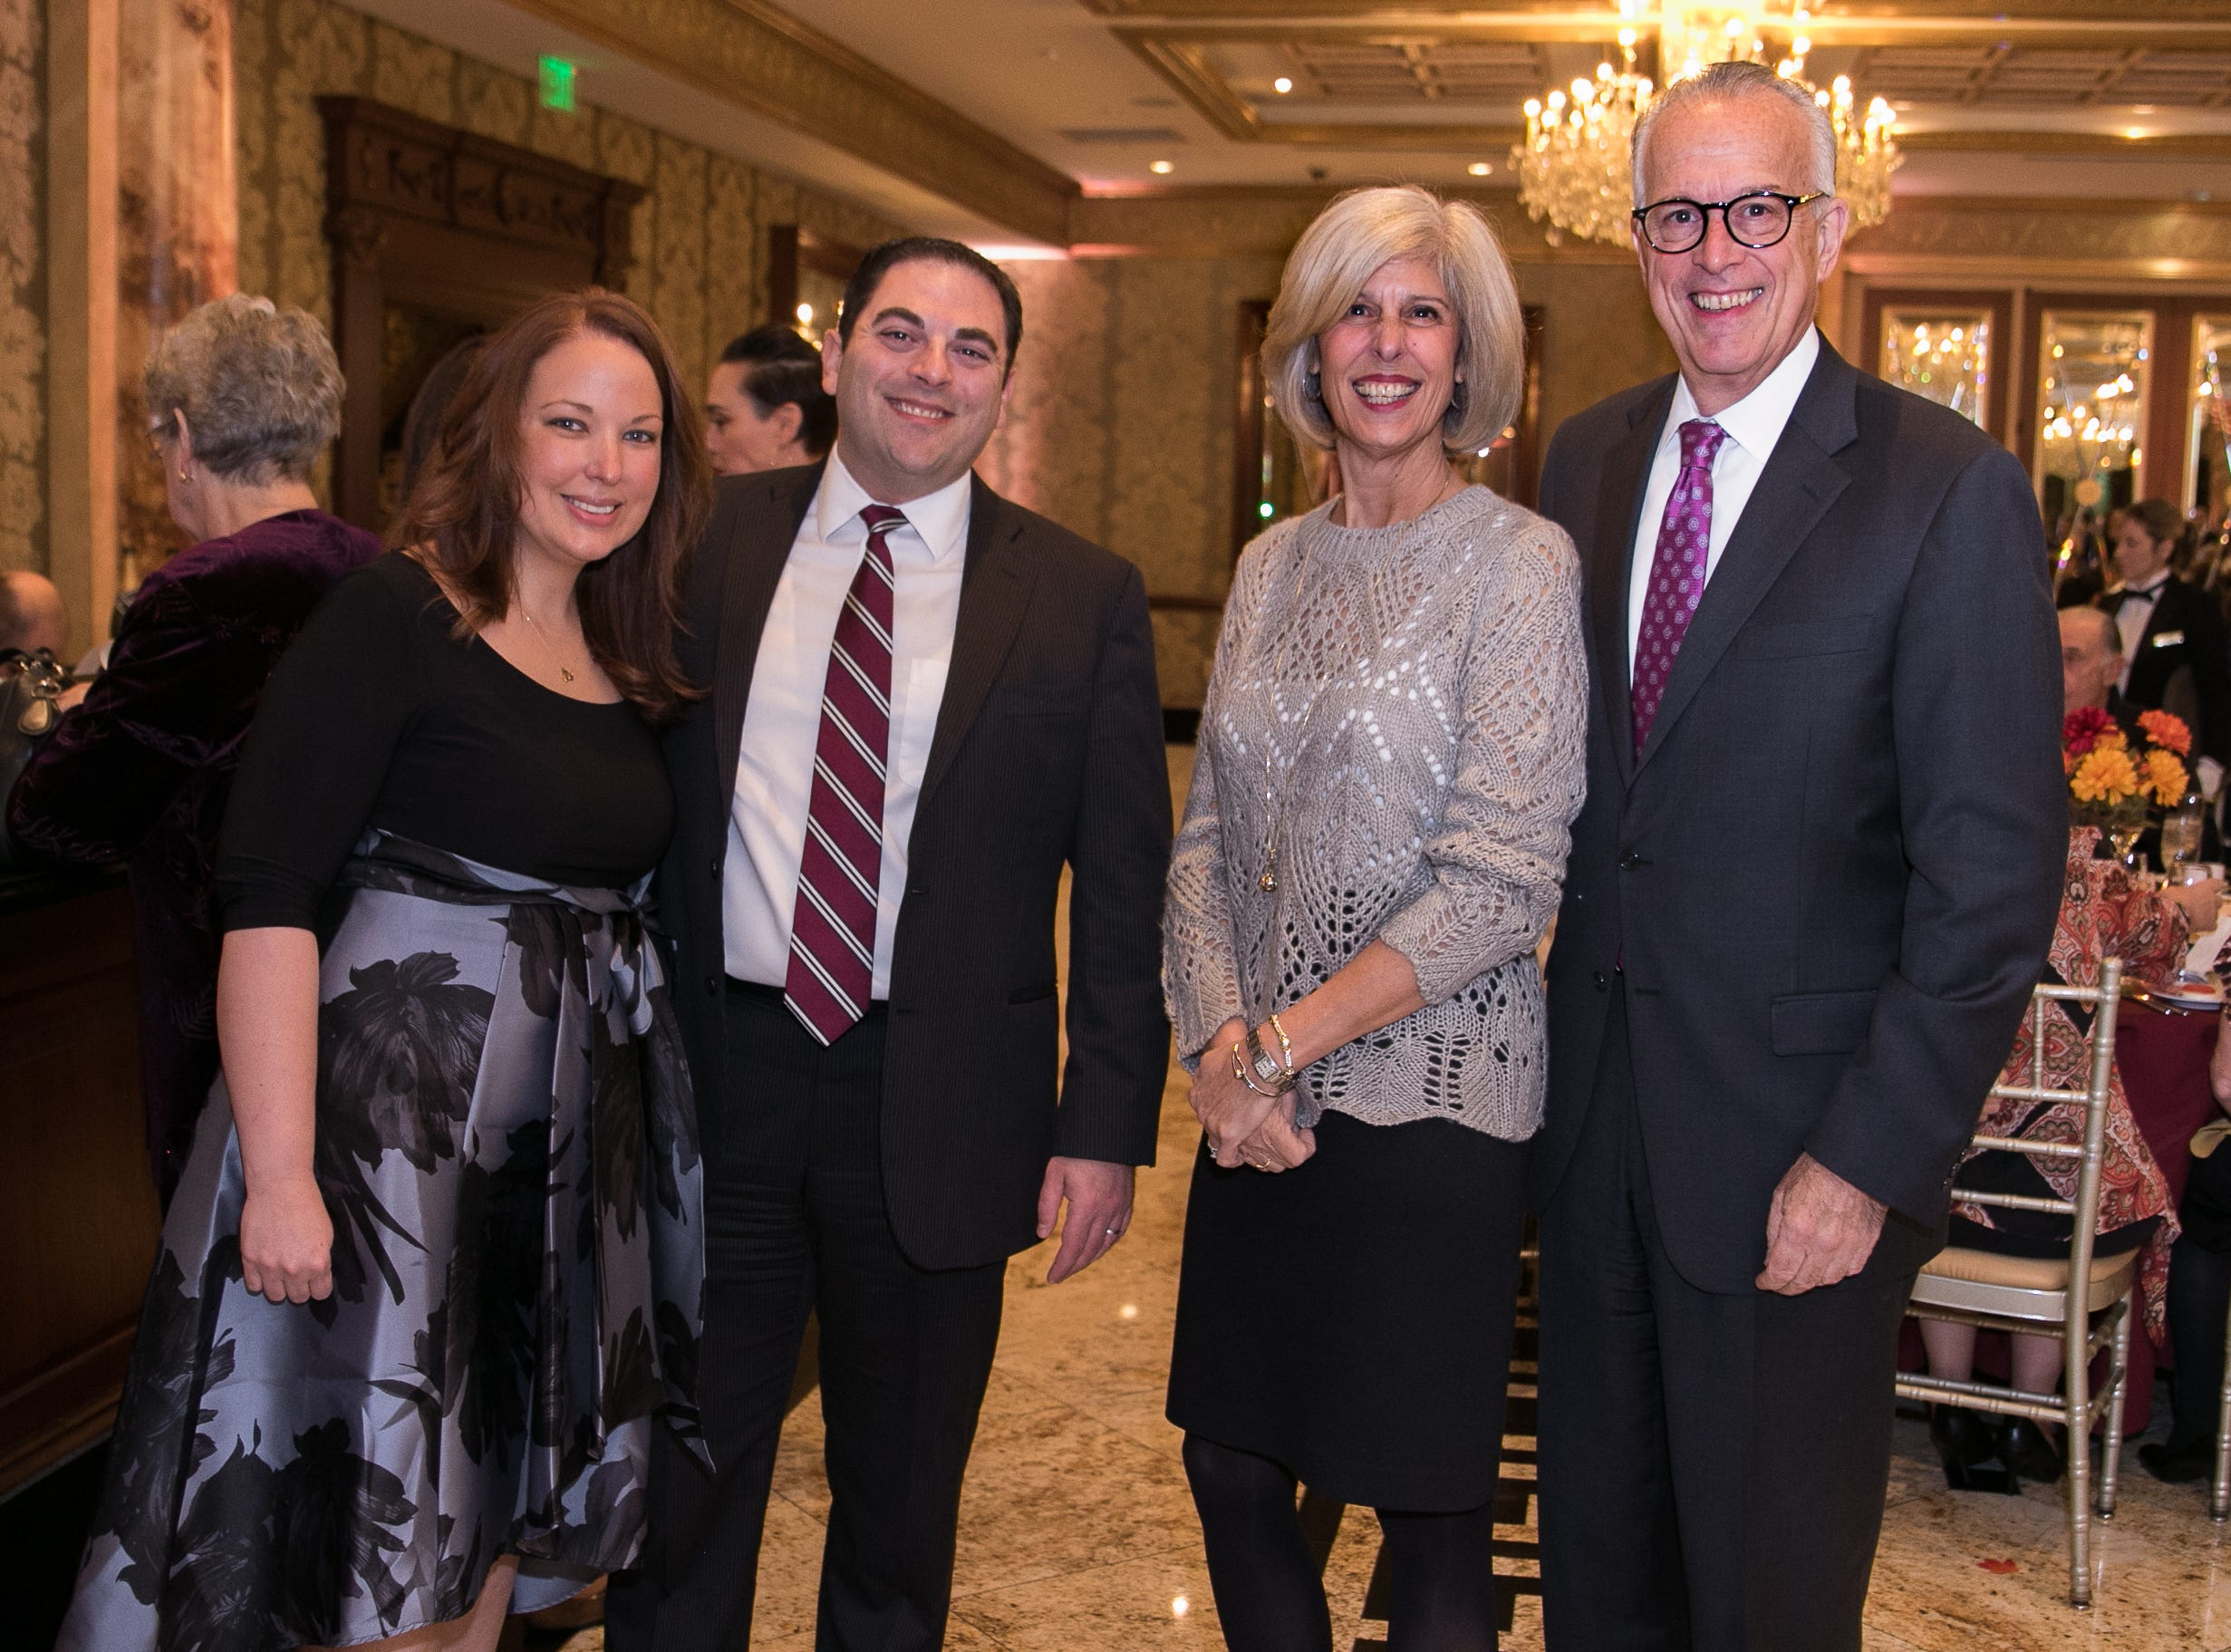 Alyson and Larry Sannicandro, Jody and Michael Guariglia. Youth Consultation Service – YCS held their 100th Anniversary Celebration at Seasons in Washington Township.11/5/2018